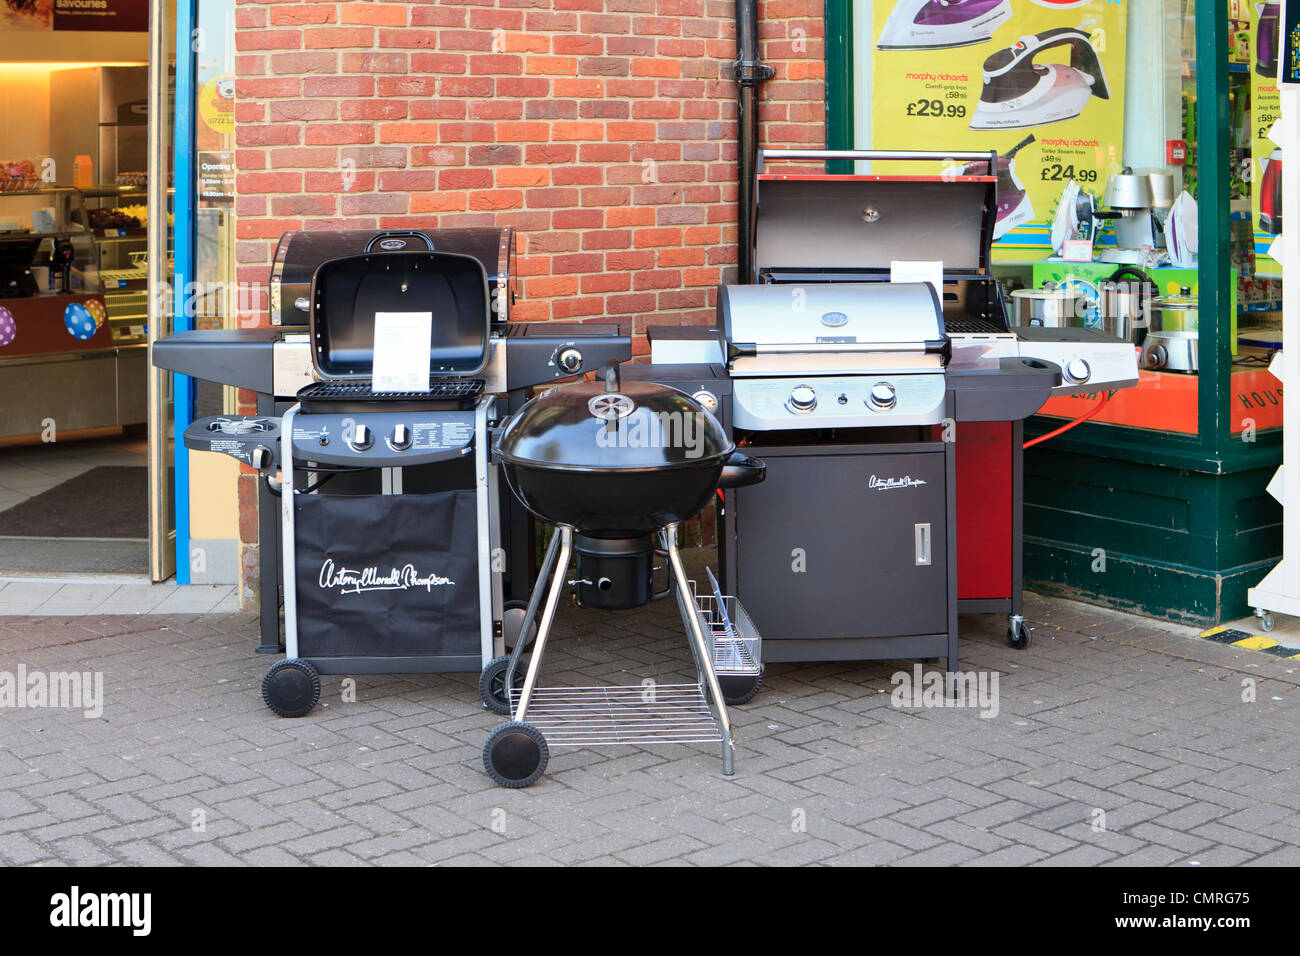 Barbecue cookers for sale outside of a shop - Stock Image